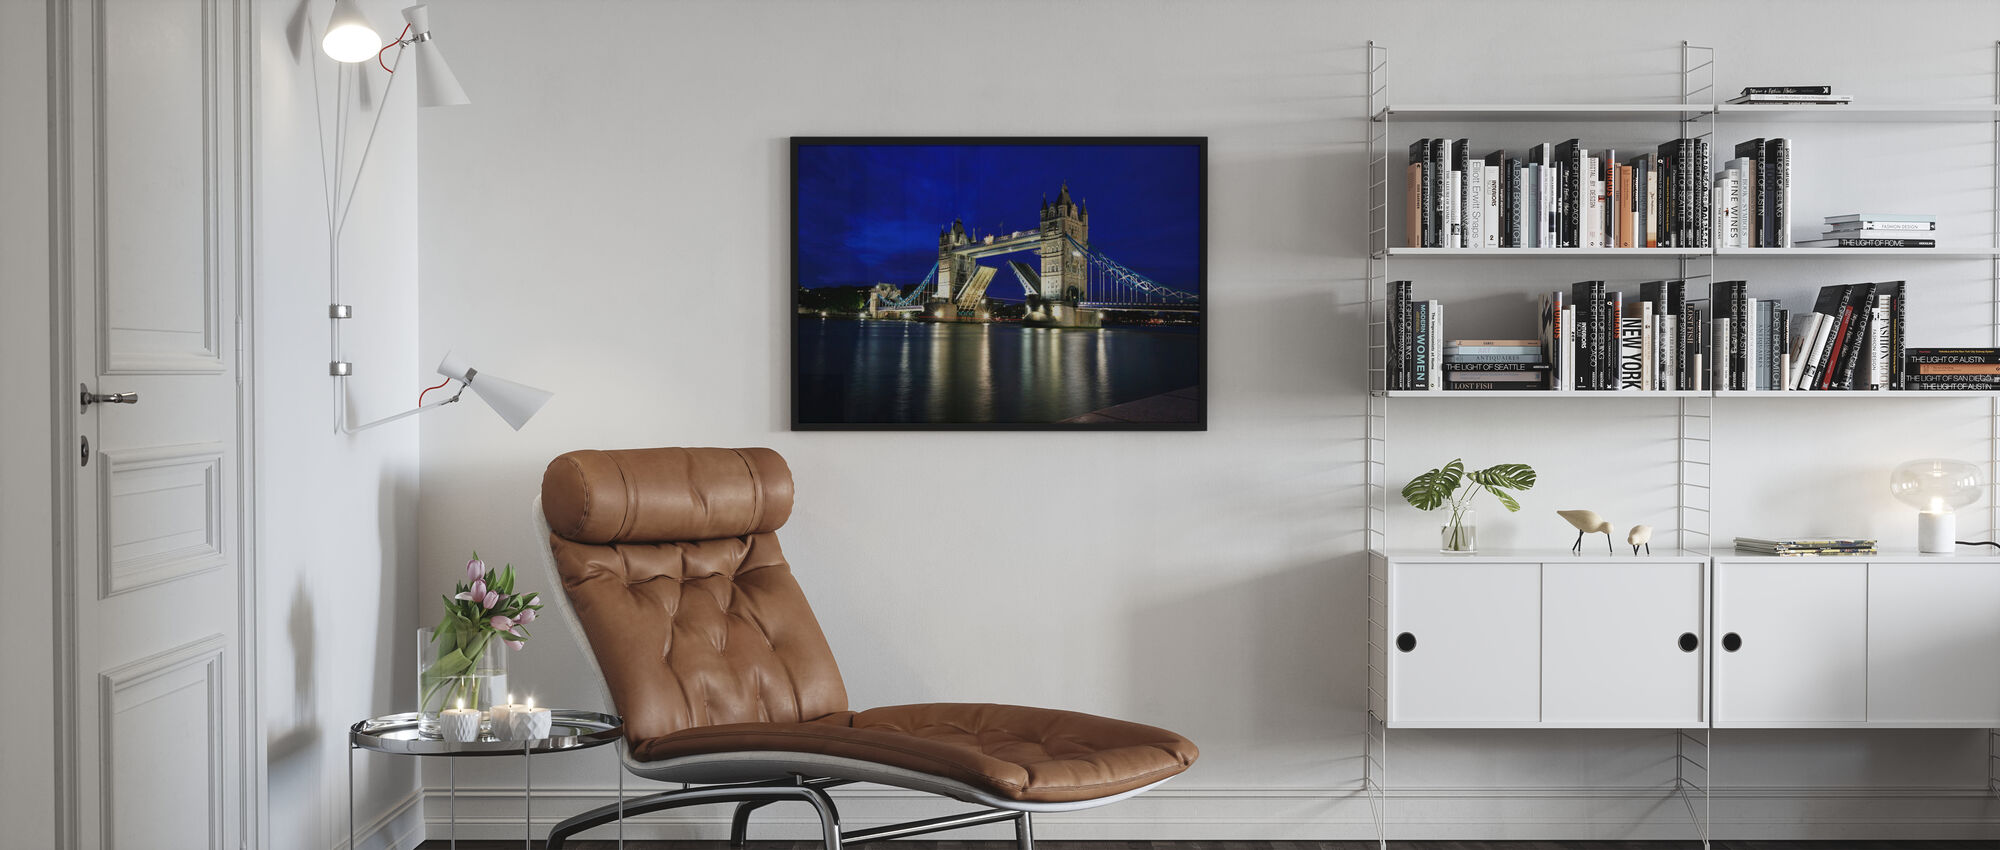 Tower Bridge at Night - Framed print - Living Room